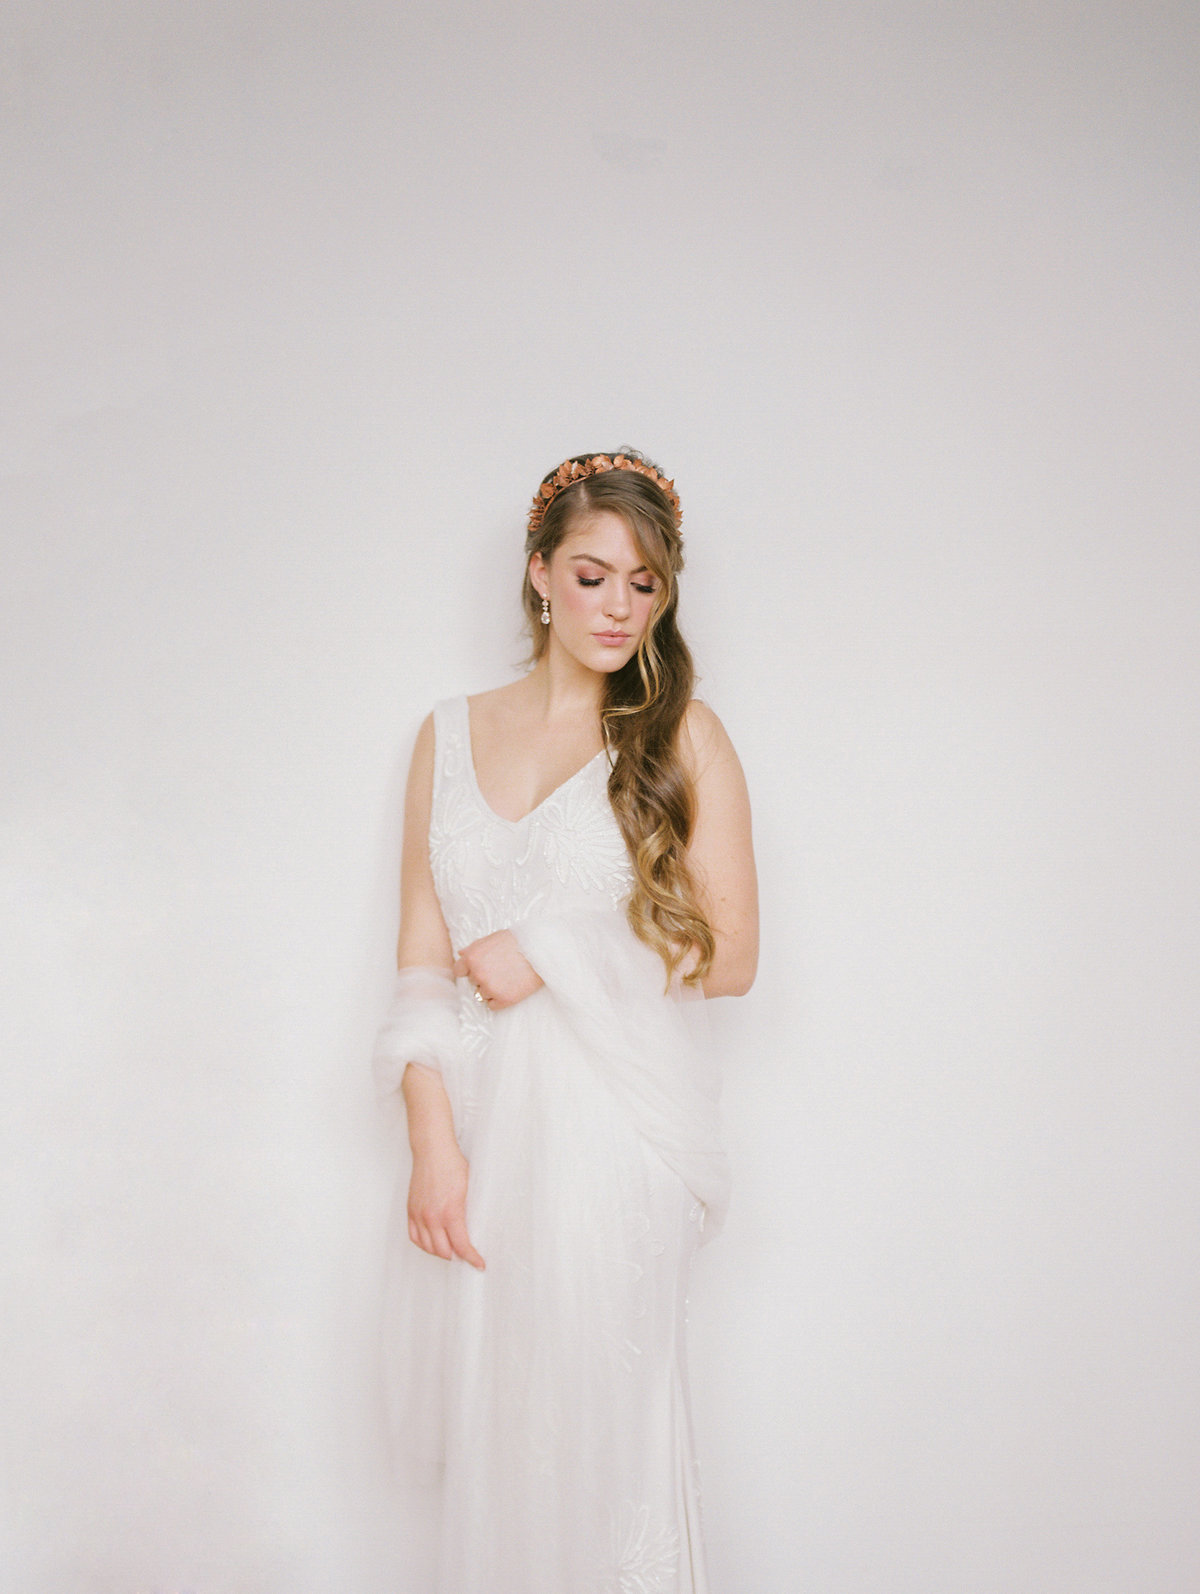 Copy of WHEN-SHE-KNEW-PHOTOGRAPHY-STYLED-WEDDING-EDITORIAL-OREGON-5